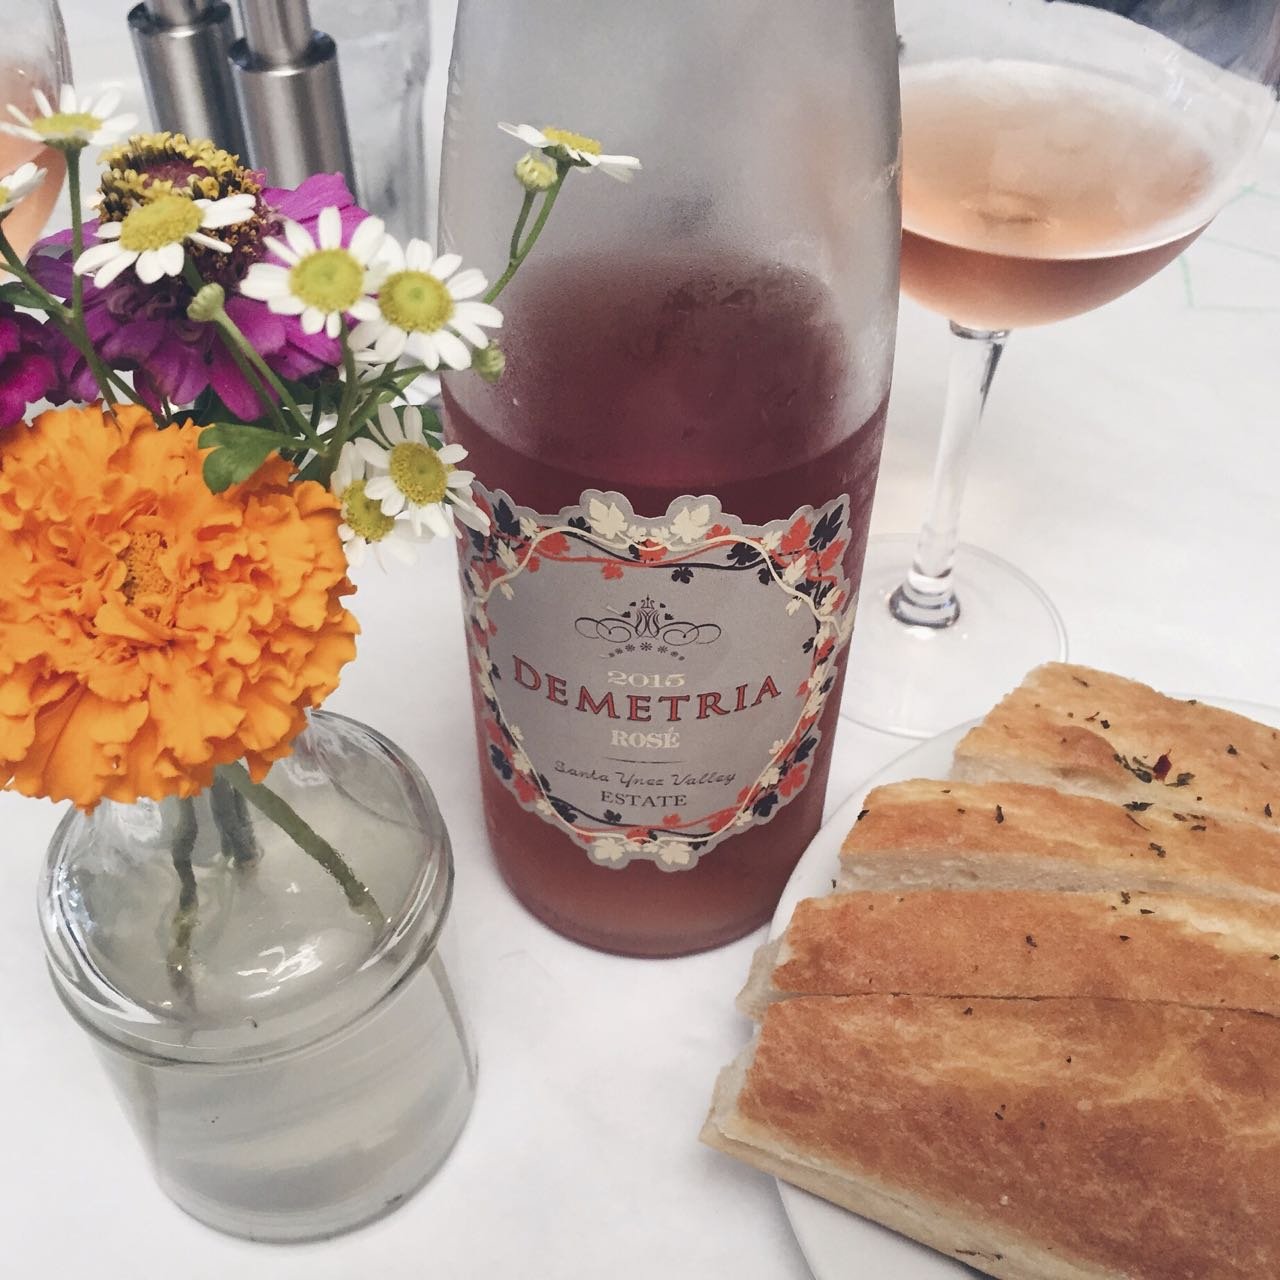 Lunch and some Demetria rosé at  Los Olivos Wine Merchant & Cafe .